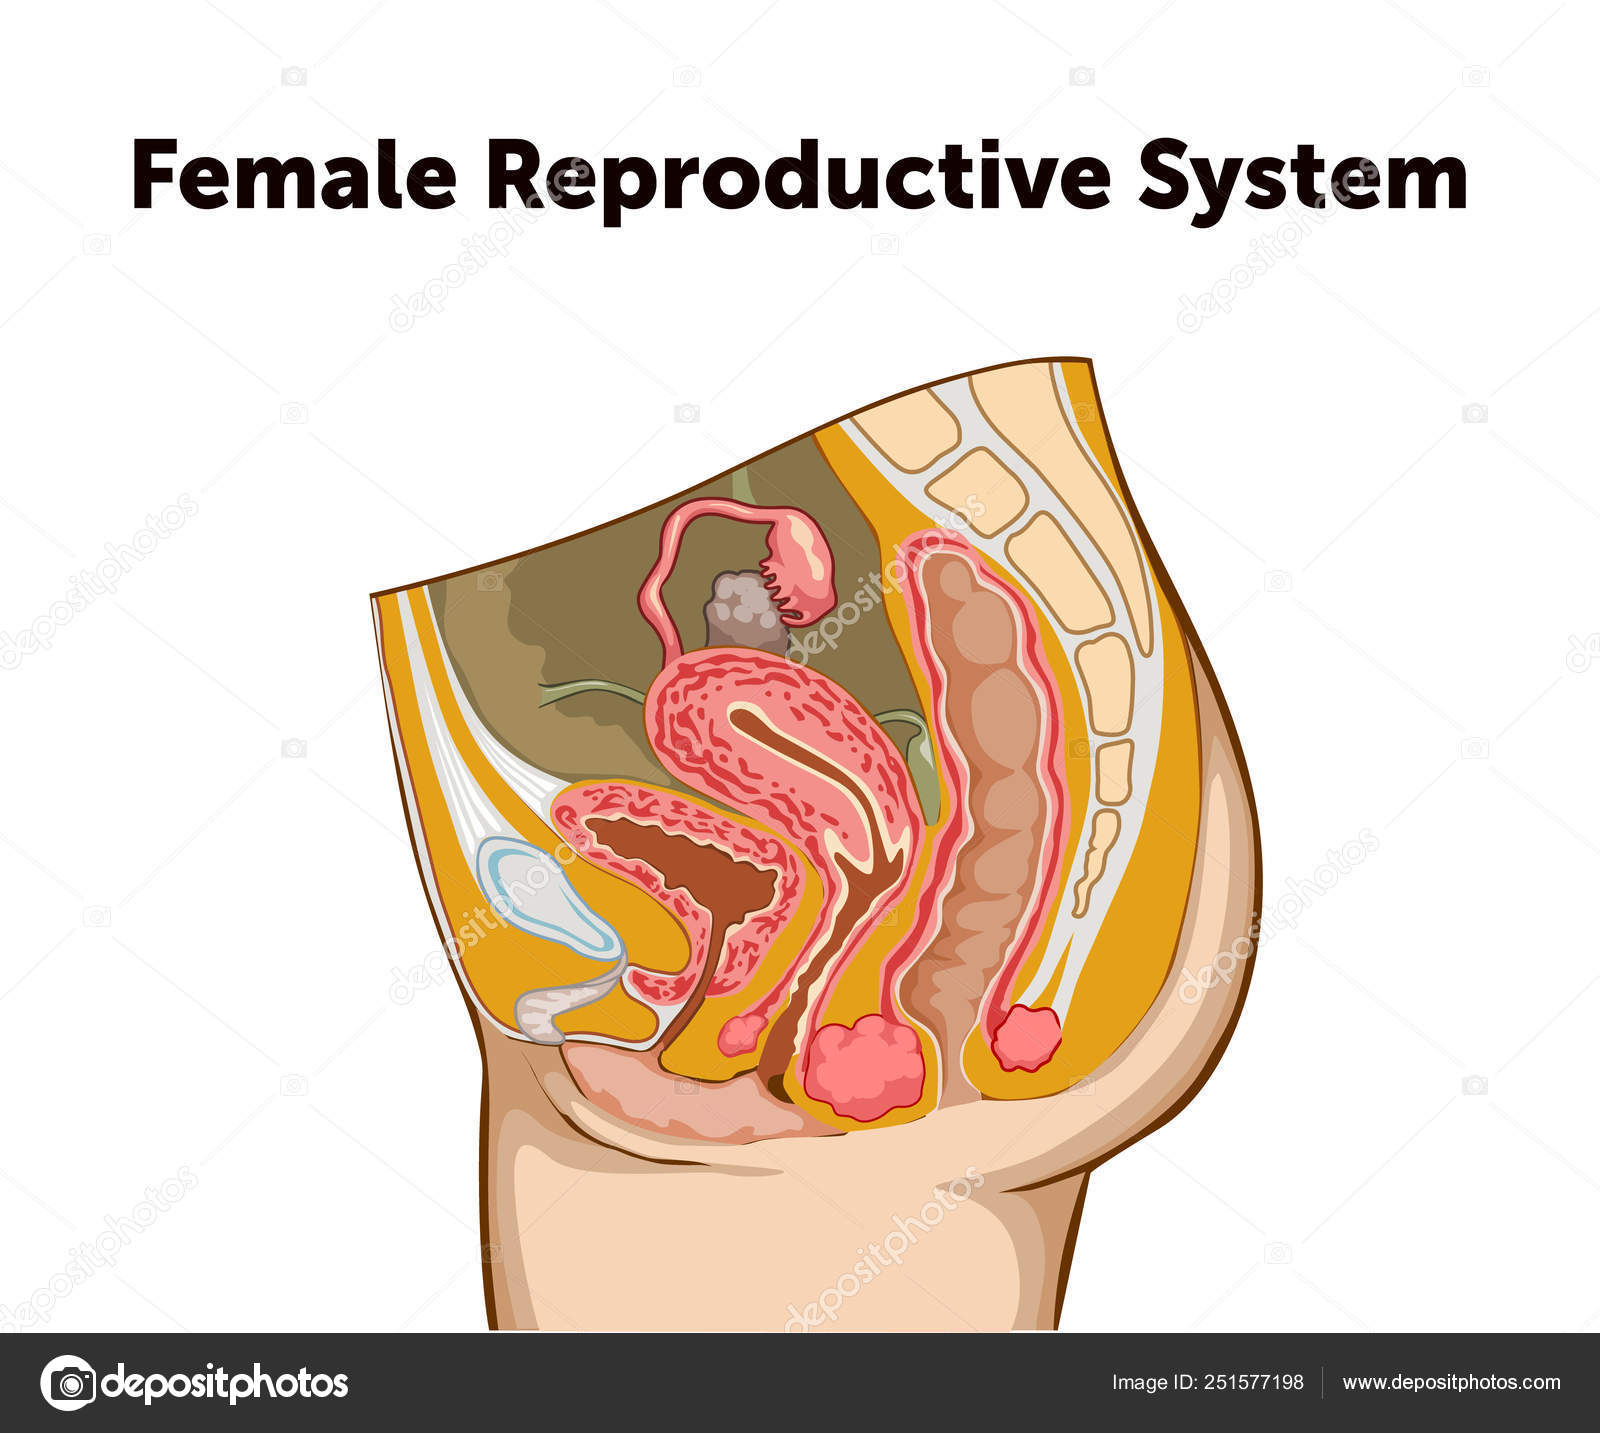 Education Chart of Biology for Reproductive System ... on pituitary system diagram, immune system diagram, fetus diagram, skin diagram, the vascular system diagram, immunologic system diagram, cardiac system diagram, endocrine system diagram, respiratory system diagram, excretory system diagram, cardiovascular system diagram, bladder system diagram, digestive tract diagram, musculoskeletal system diagram, integumentary system diagram, nervous system diagram, uterus system diagram, sensory system diagram, hepatobiliary system diagram, cns system diagram,